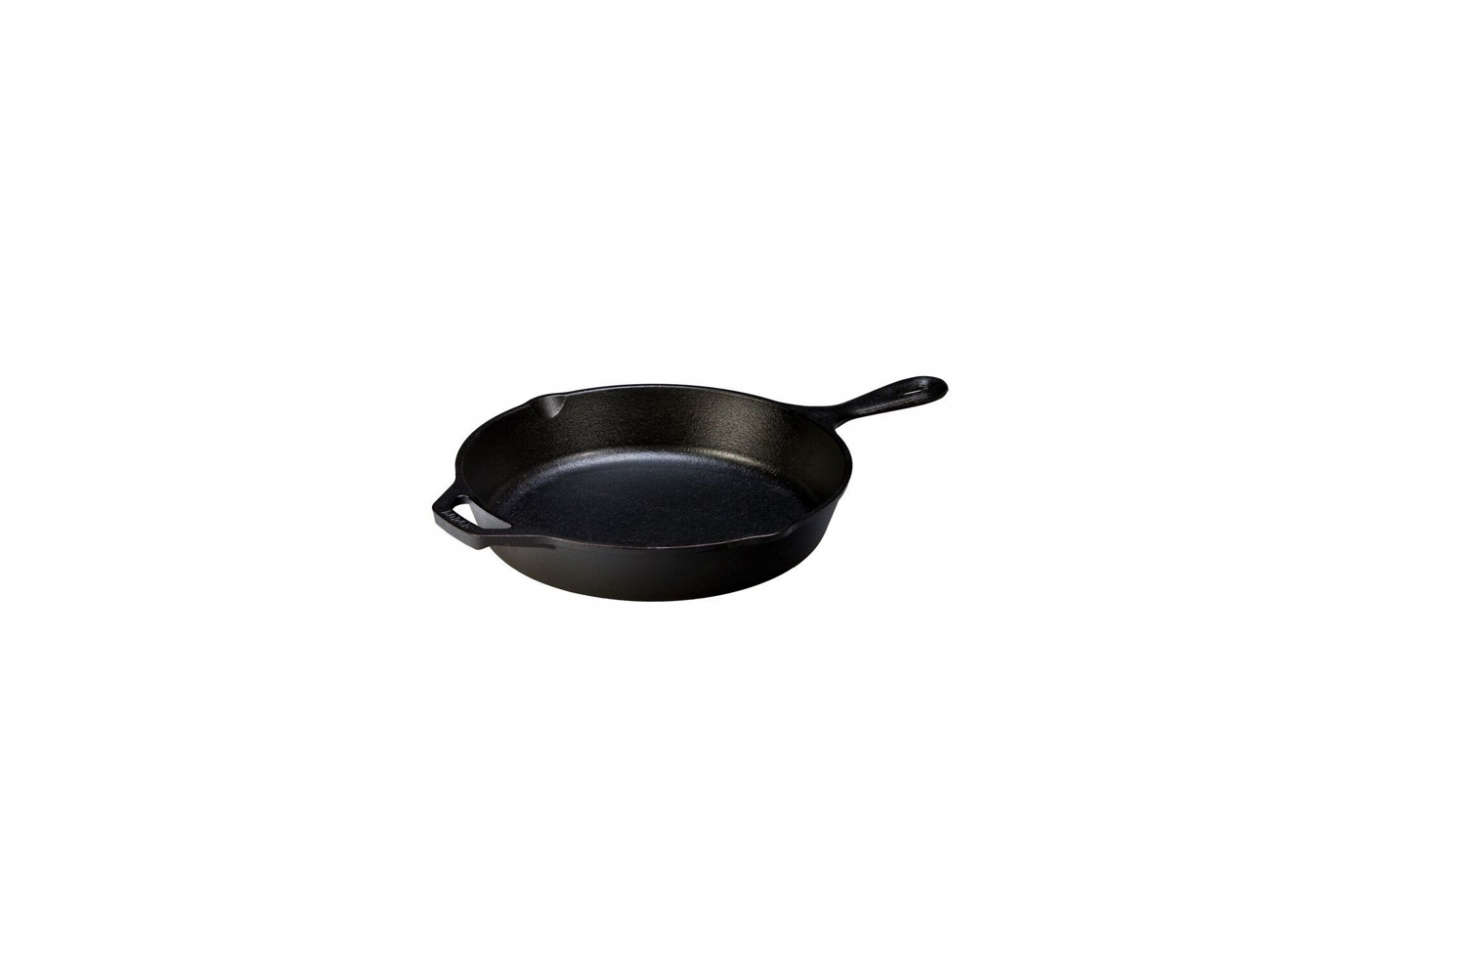 Everyone needs a basic cast iron skillet. Our pick is the Lodge Cast Iron 10-Inch Pre-Seasoned Skillet for $24.71 on Amazon.